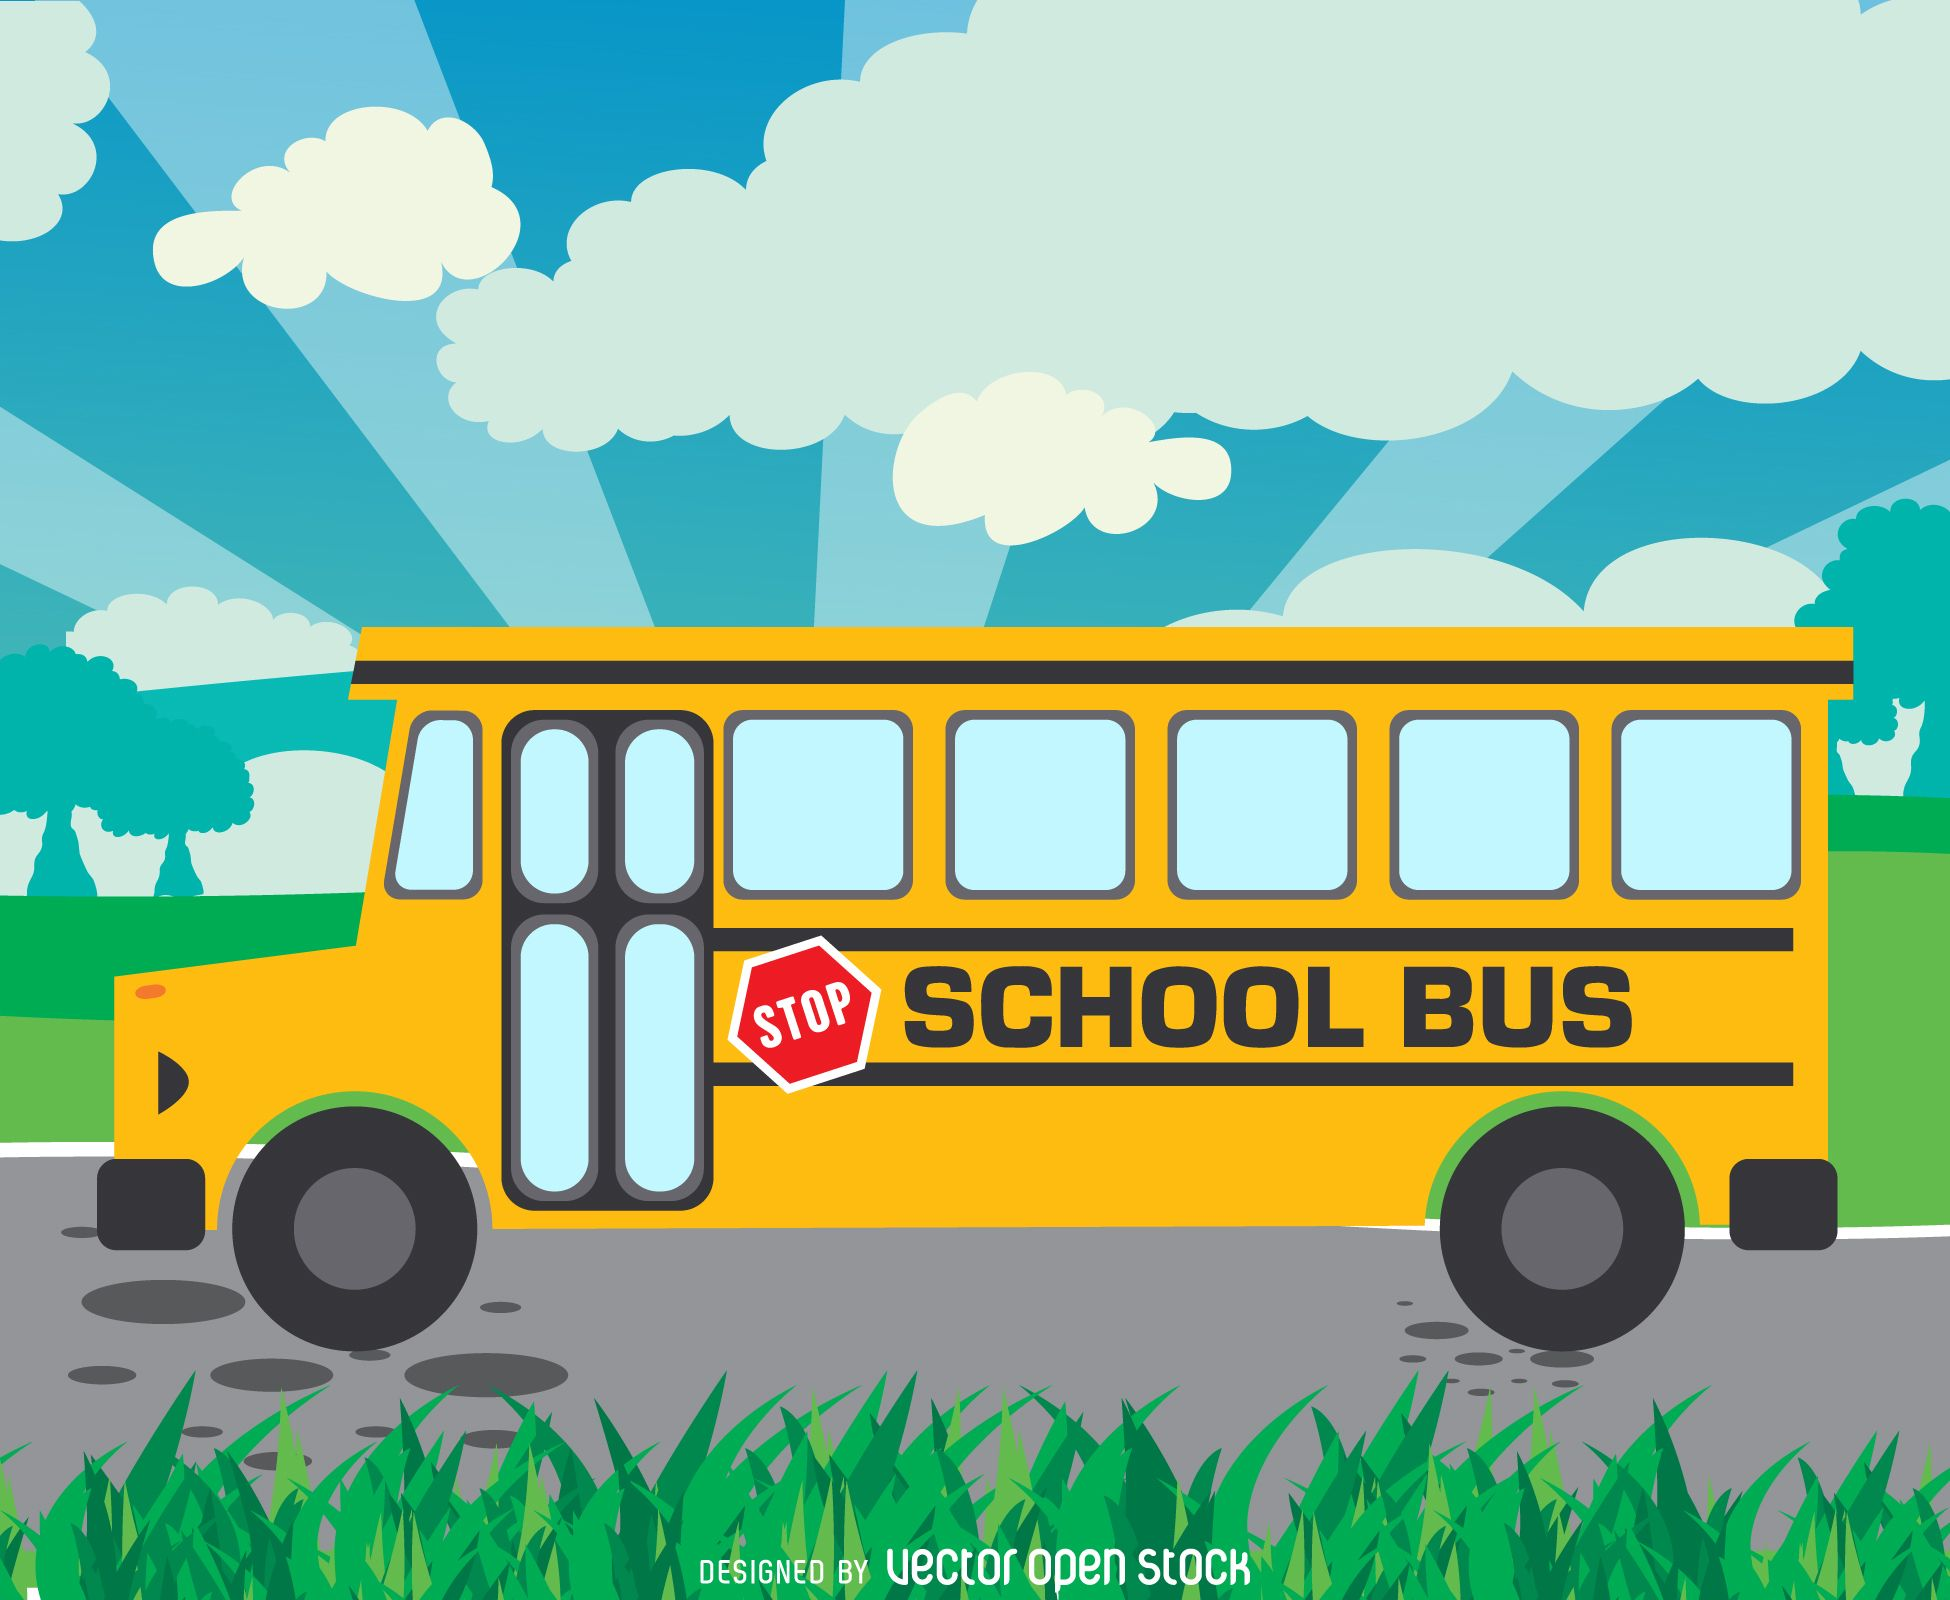 Illustrated Yellow School Bus On A Road Cartoon Says School Bus